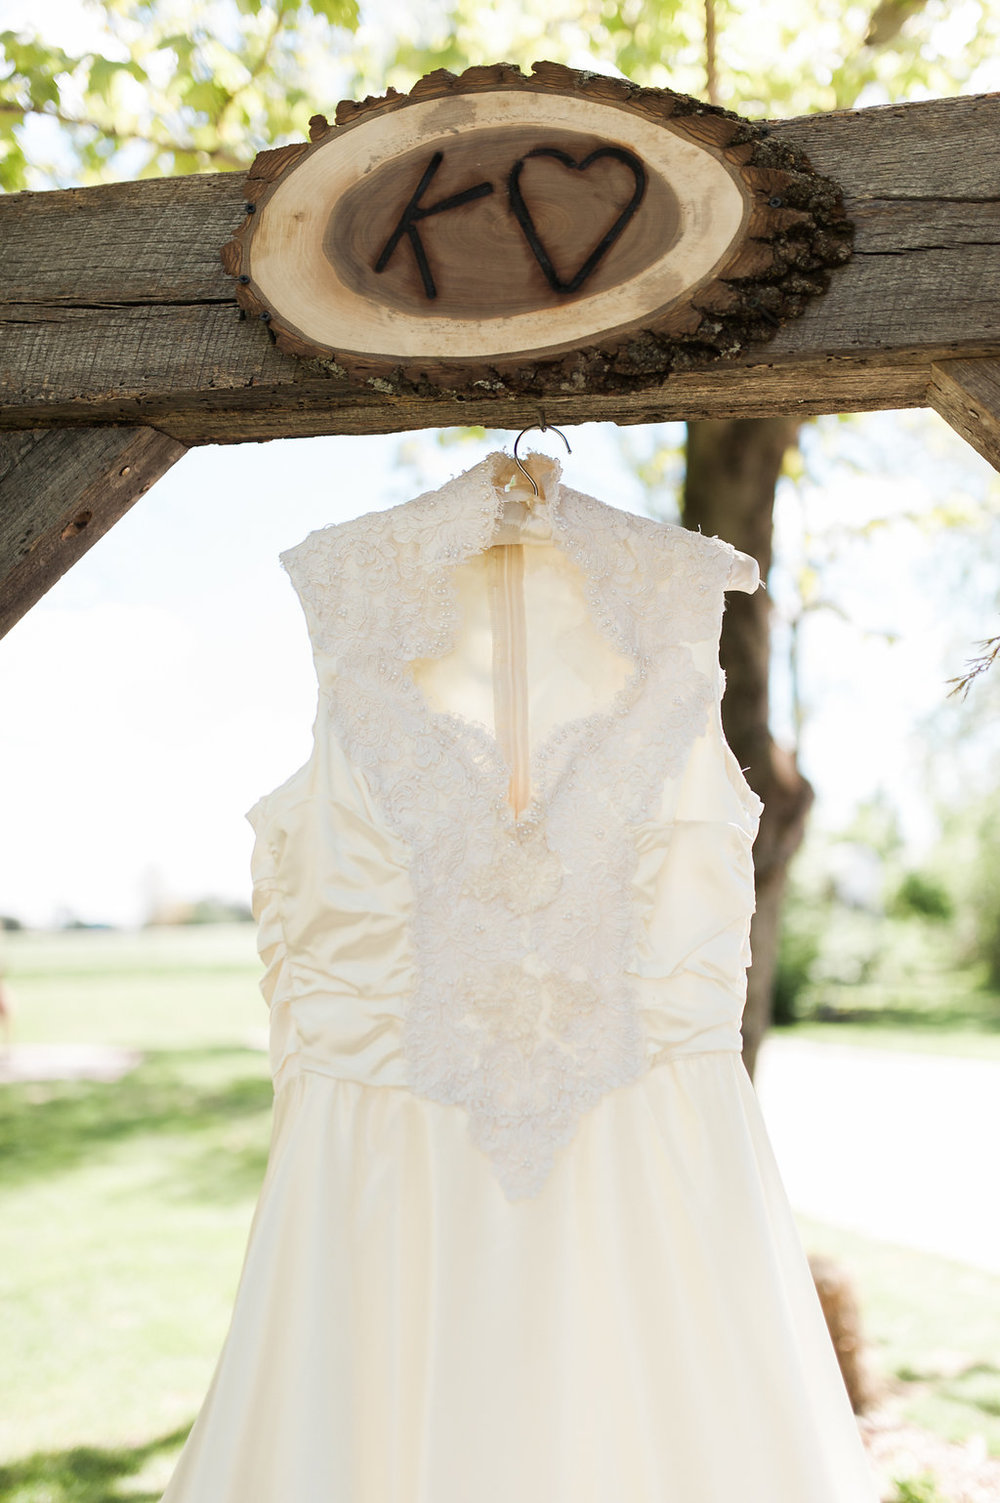 Rustic Wedding Dress - Iowa Farm Wedding - Private Estate Weddings